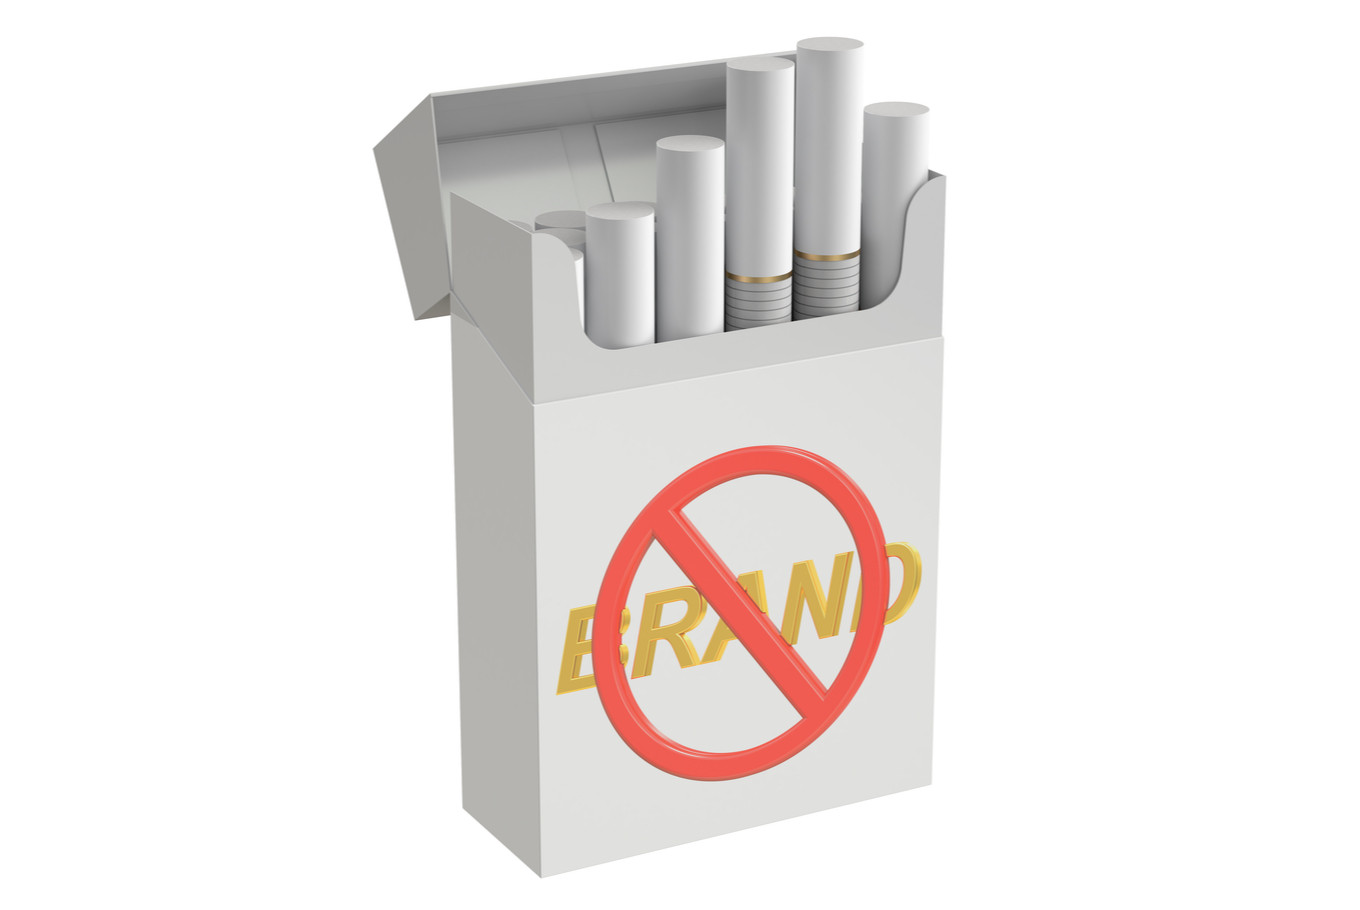 Plain packaging accelerates an end to tobacco epidemic